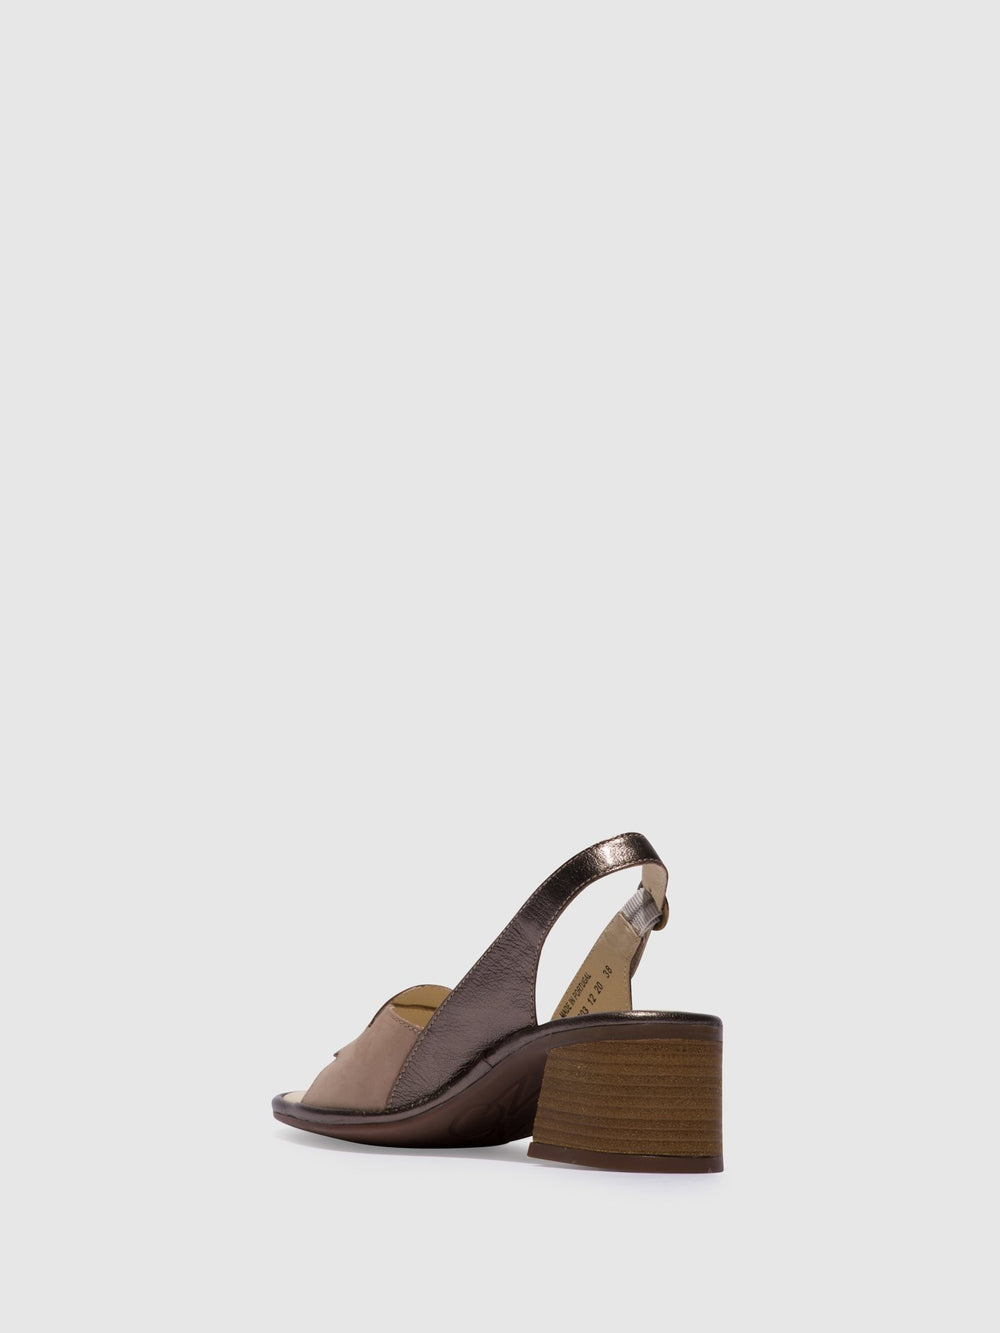 Sling-Back Sandals LESO179FLY CONCRETE/BRONZE